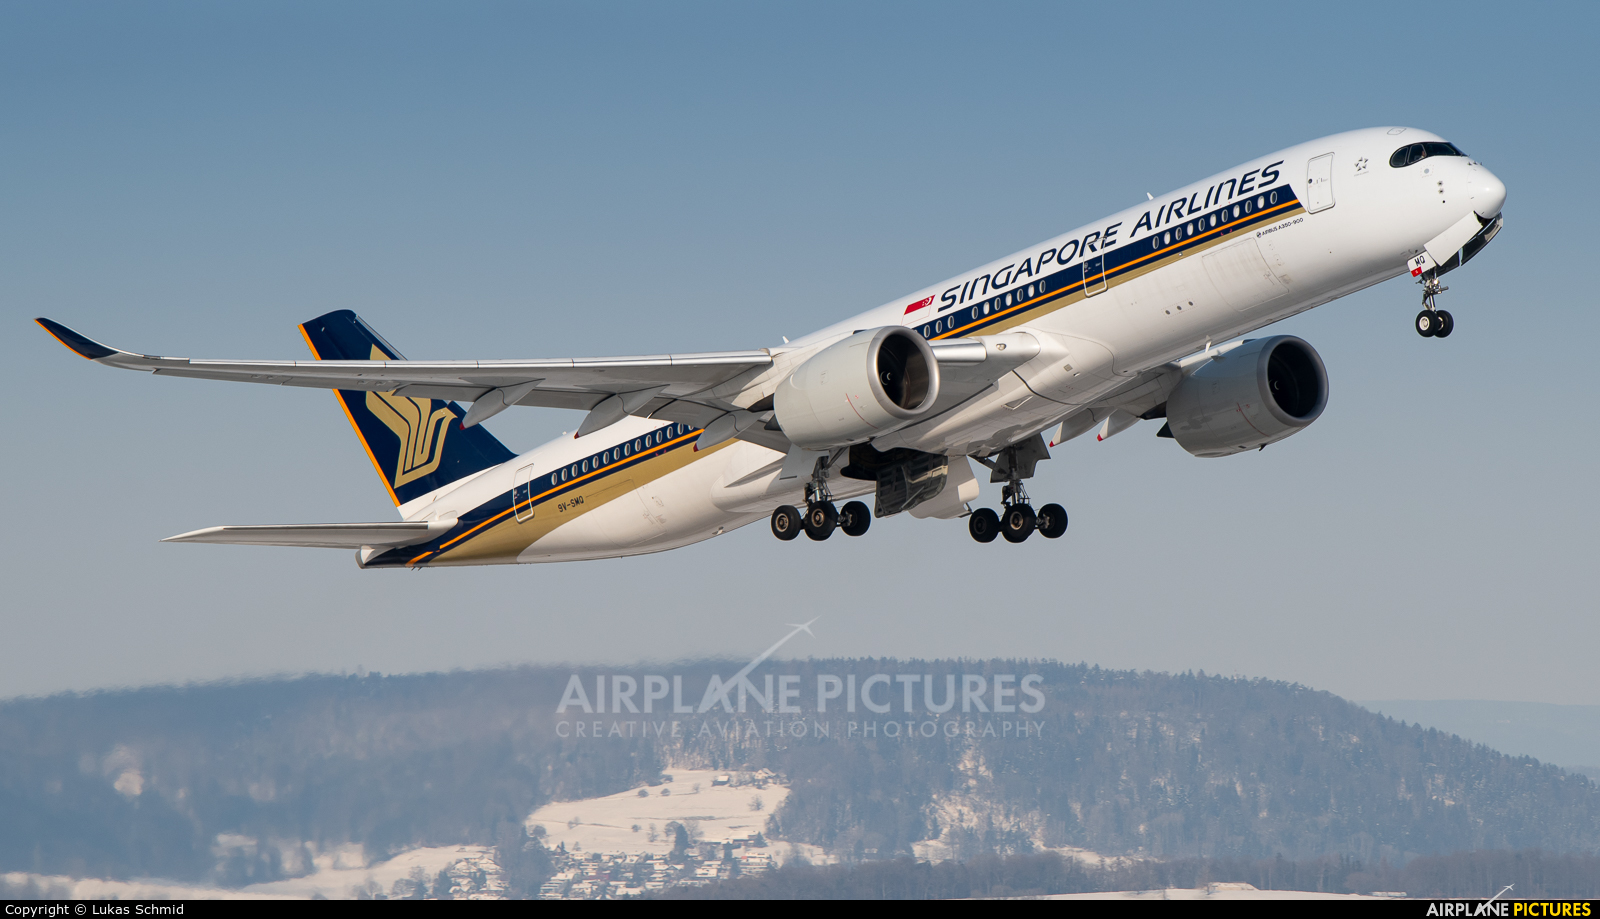 Singapore Airlines 9V-SMQ aircraft at Zurich